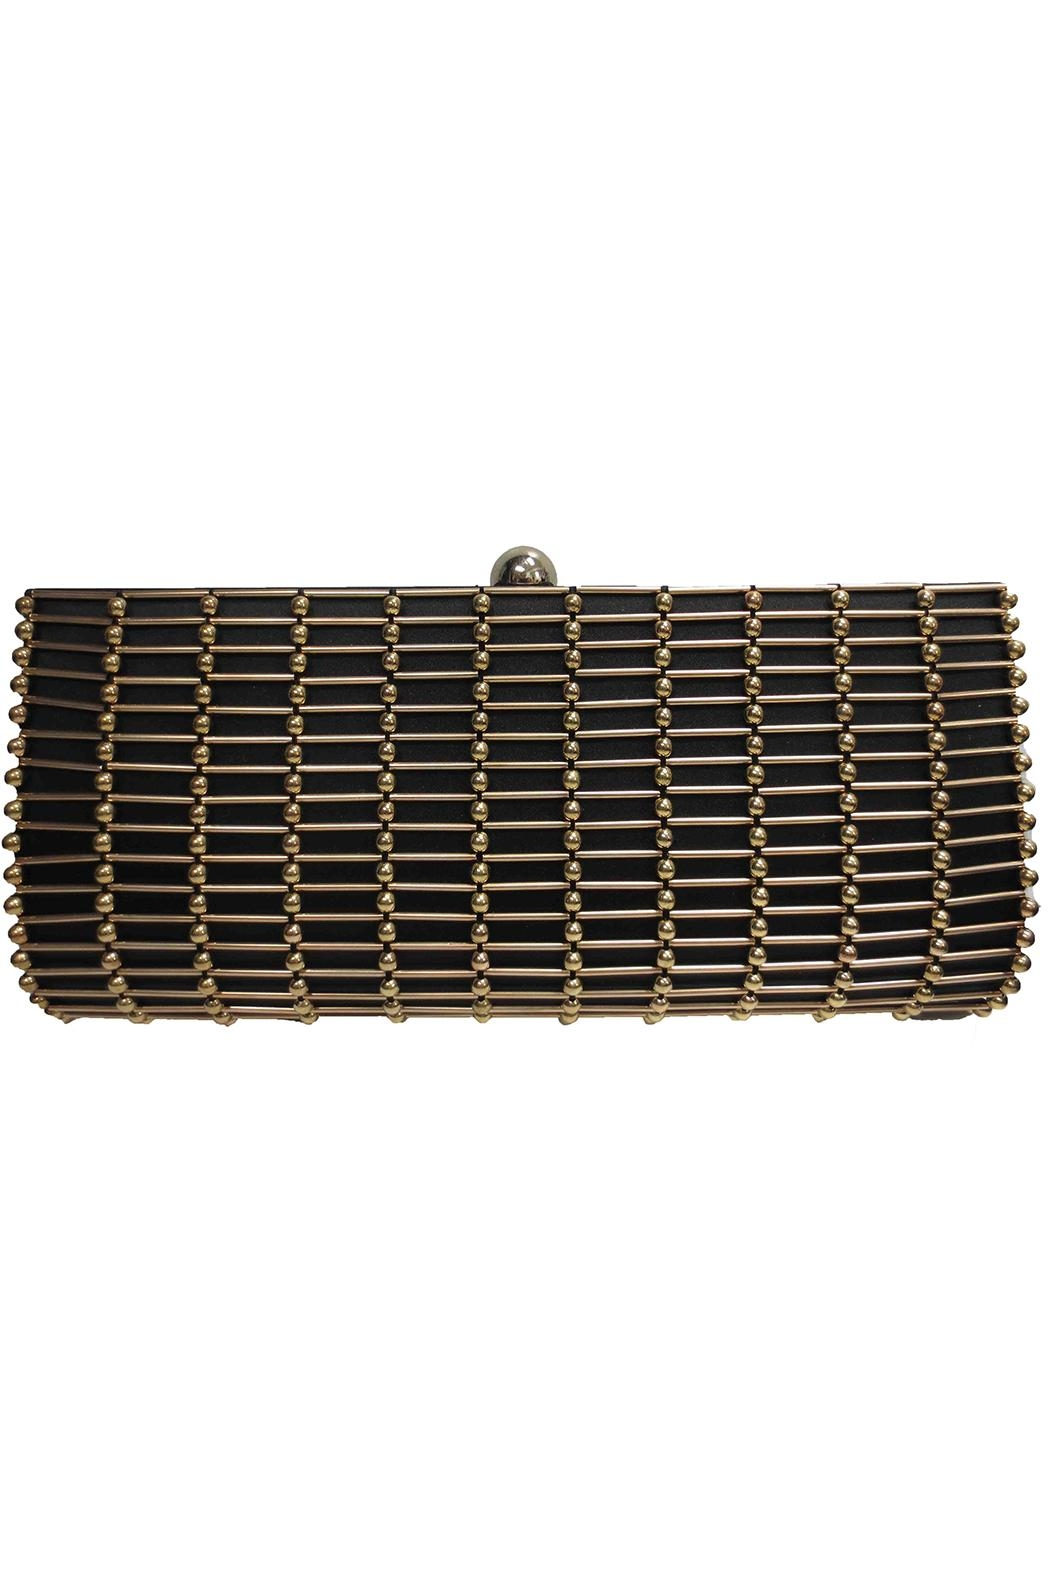 Sondra Roberts Jeweled Evening Clutch - Front Cropped Image